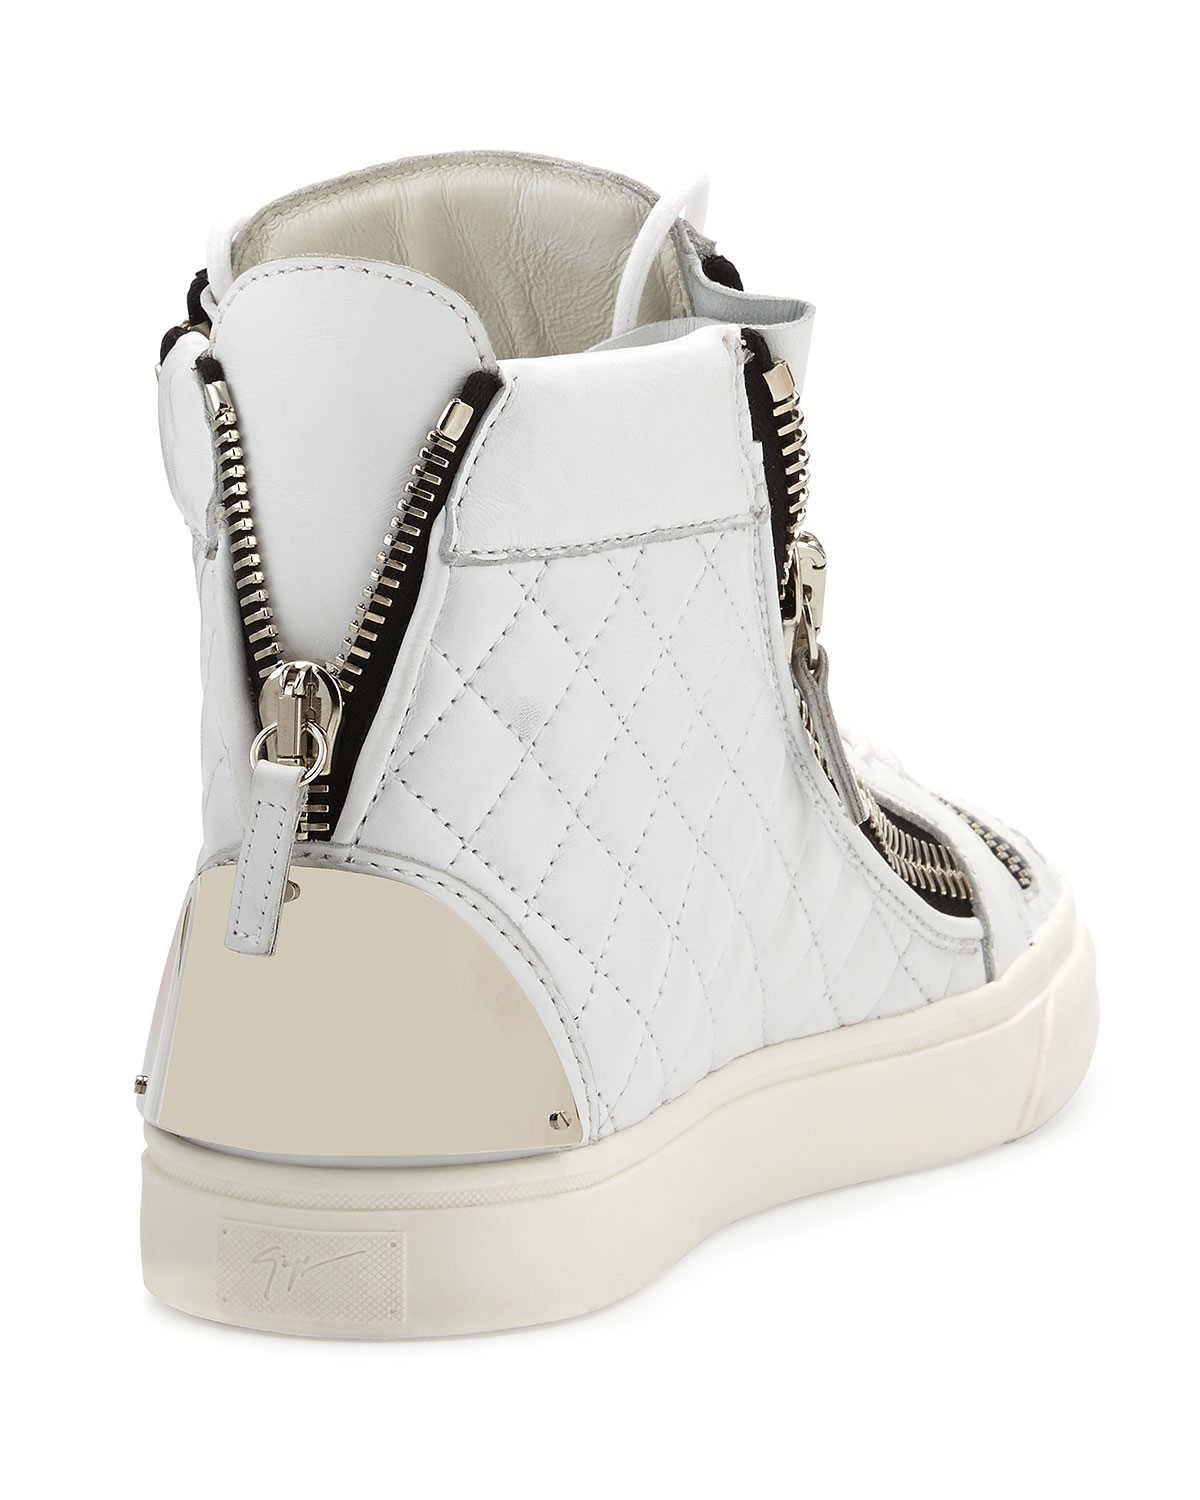 sneakers with zippers 28 images diesel nentish zipper. Black Bedroom Furniture Sets. Home Design Ideas